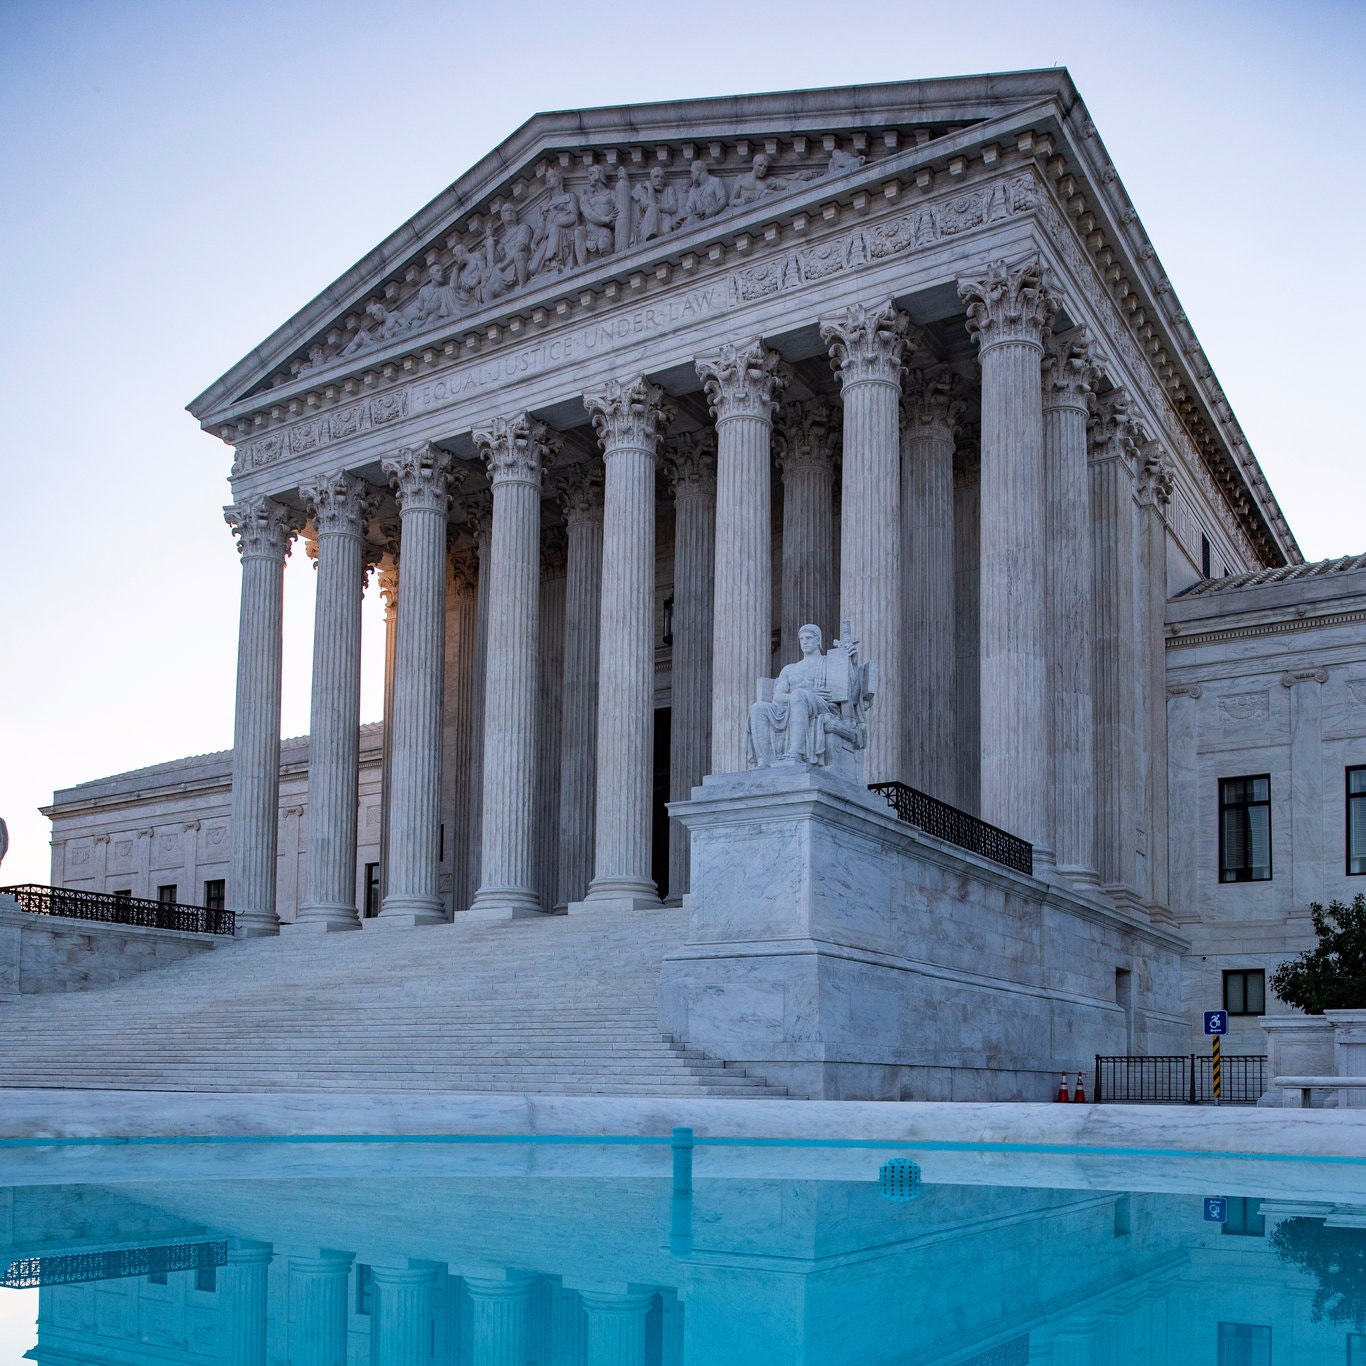 The Supreme Court ruled Thursday on two bitterly contested cases that addressed issues fundamental to the American political system itself. Credit Samuel Corum for The New York Times